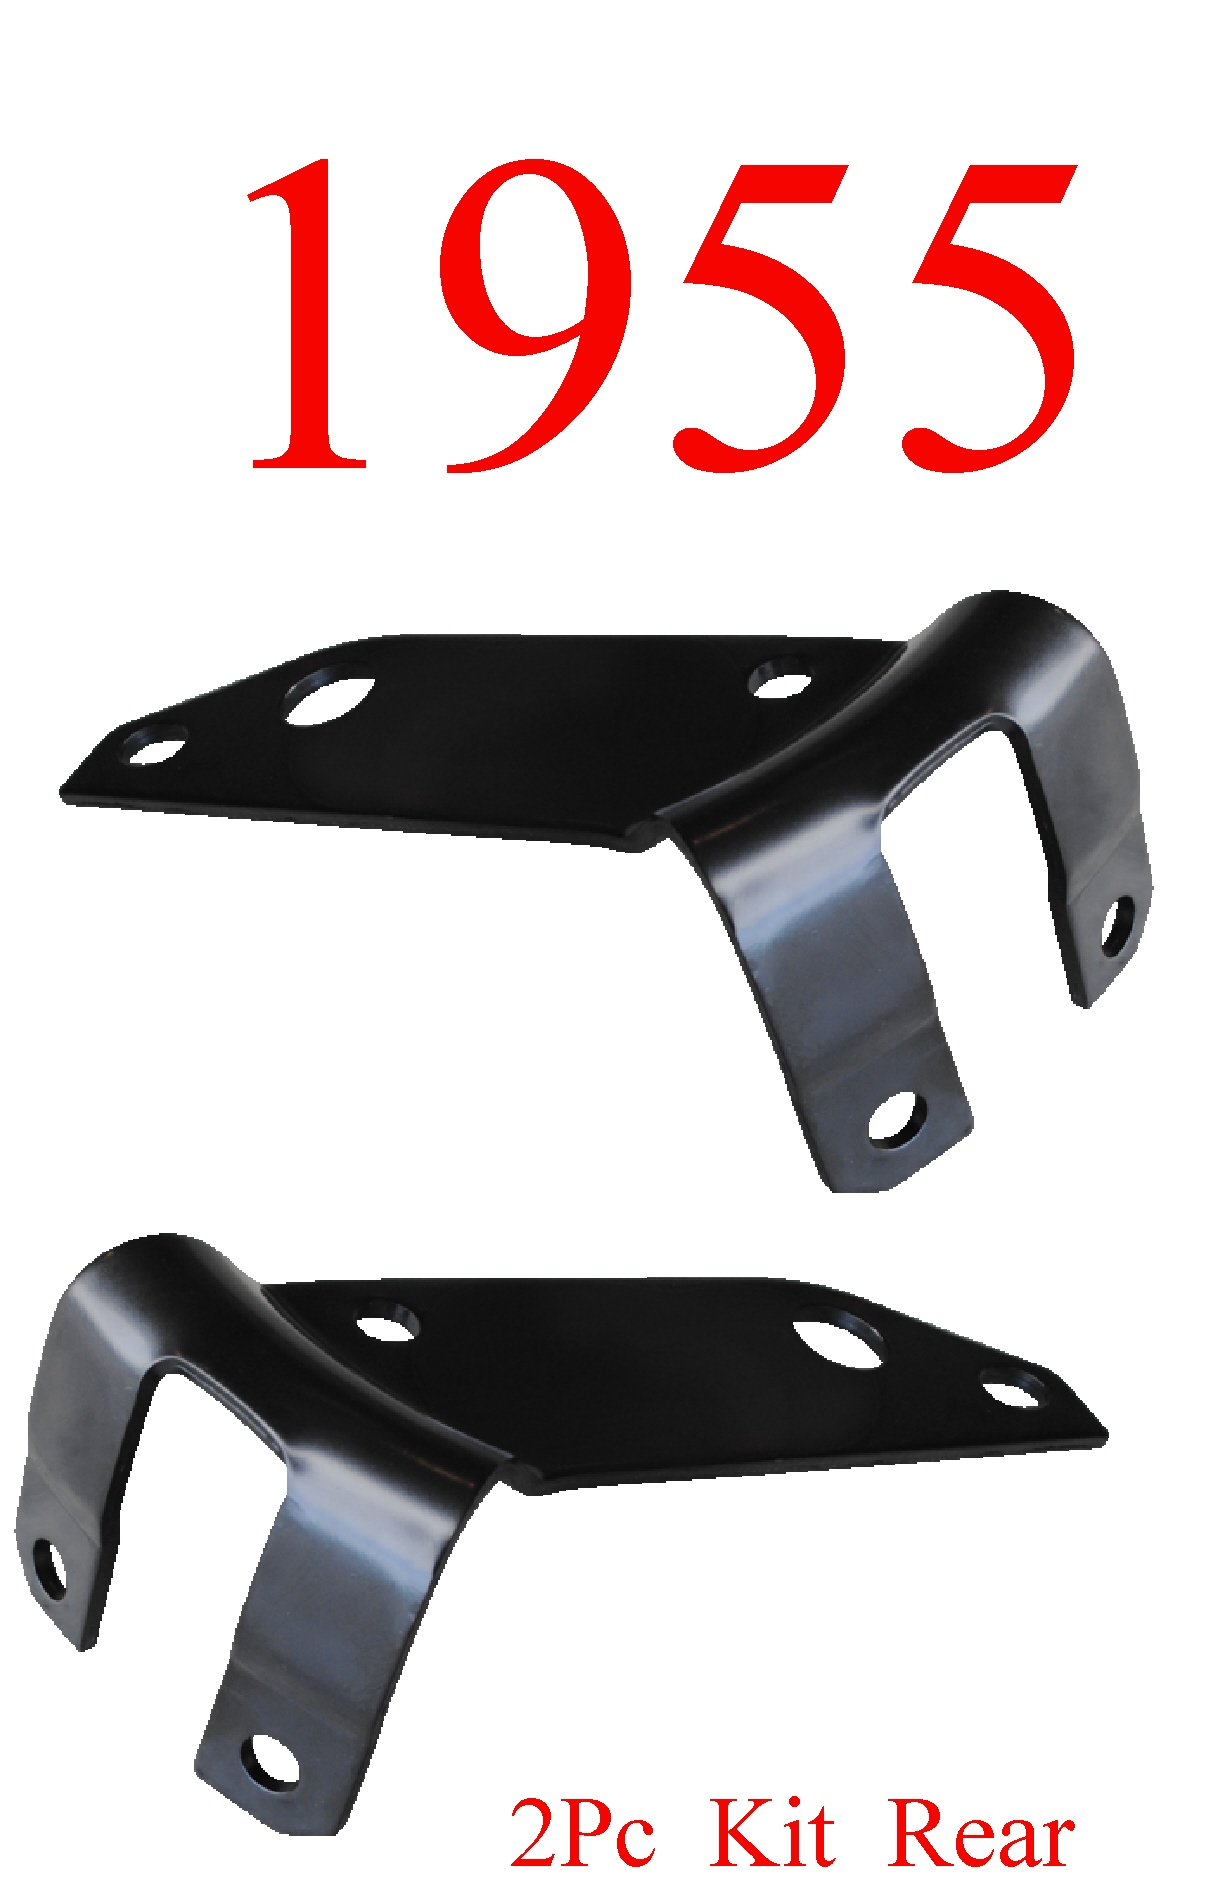 55 Chevy Bel Air 2Pc Rear Side Bumper Bracket Set